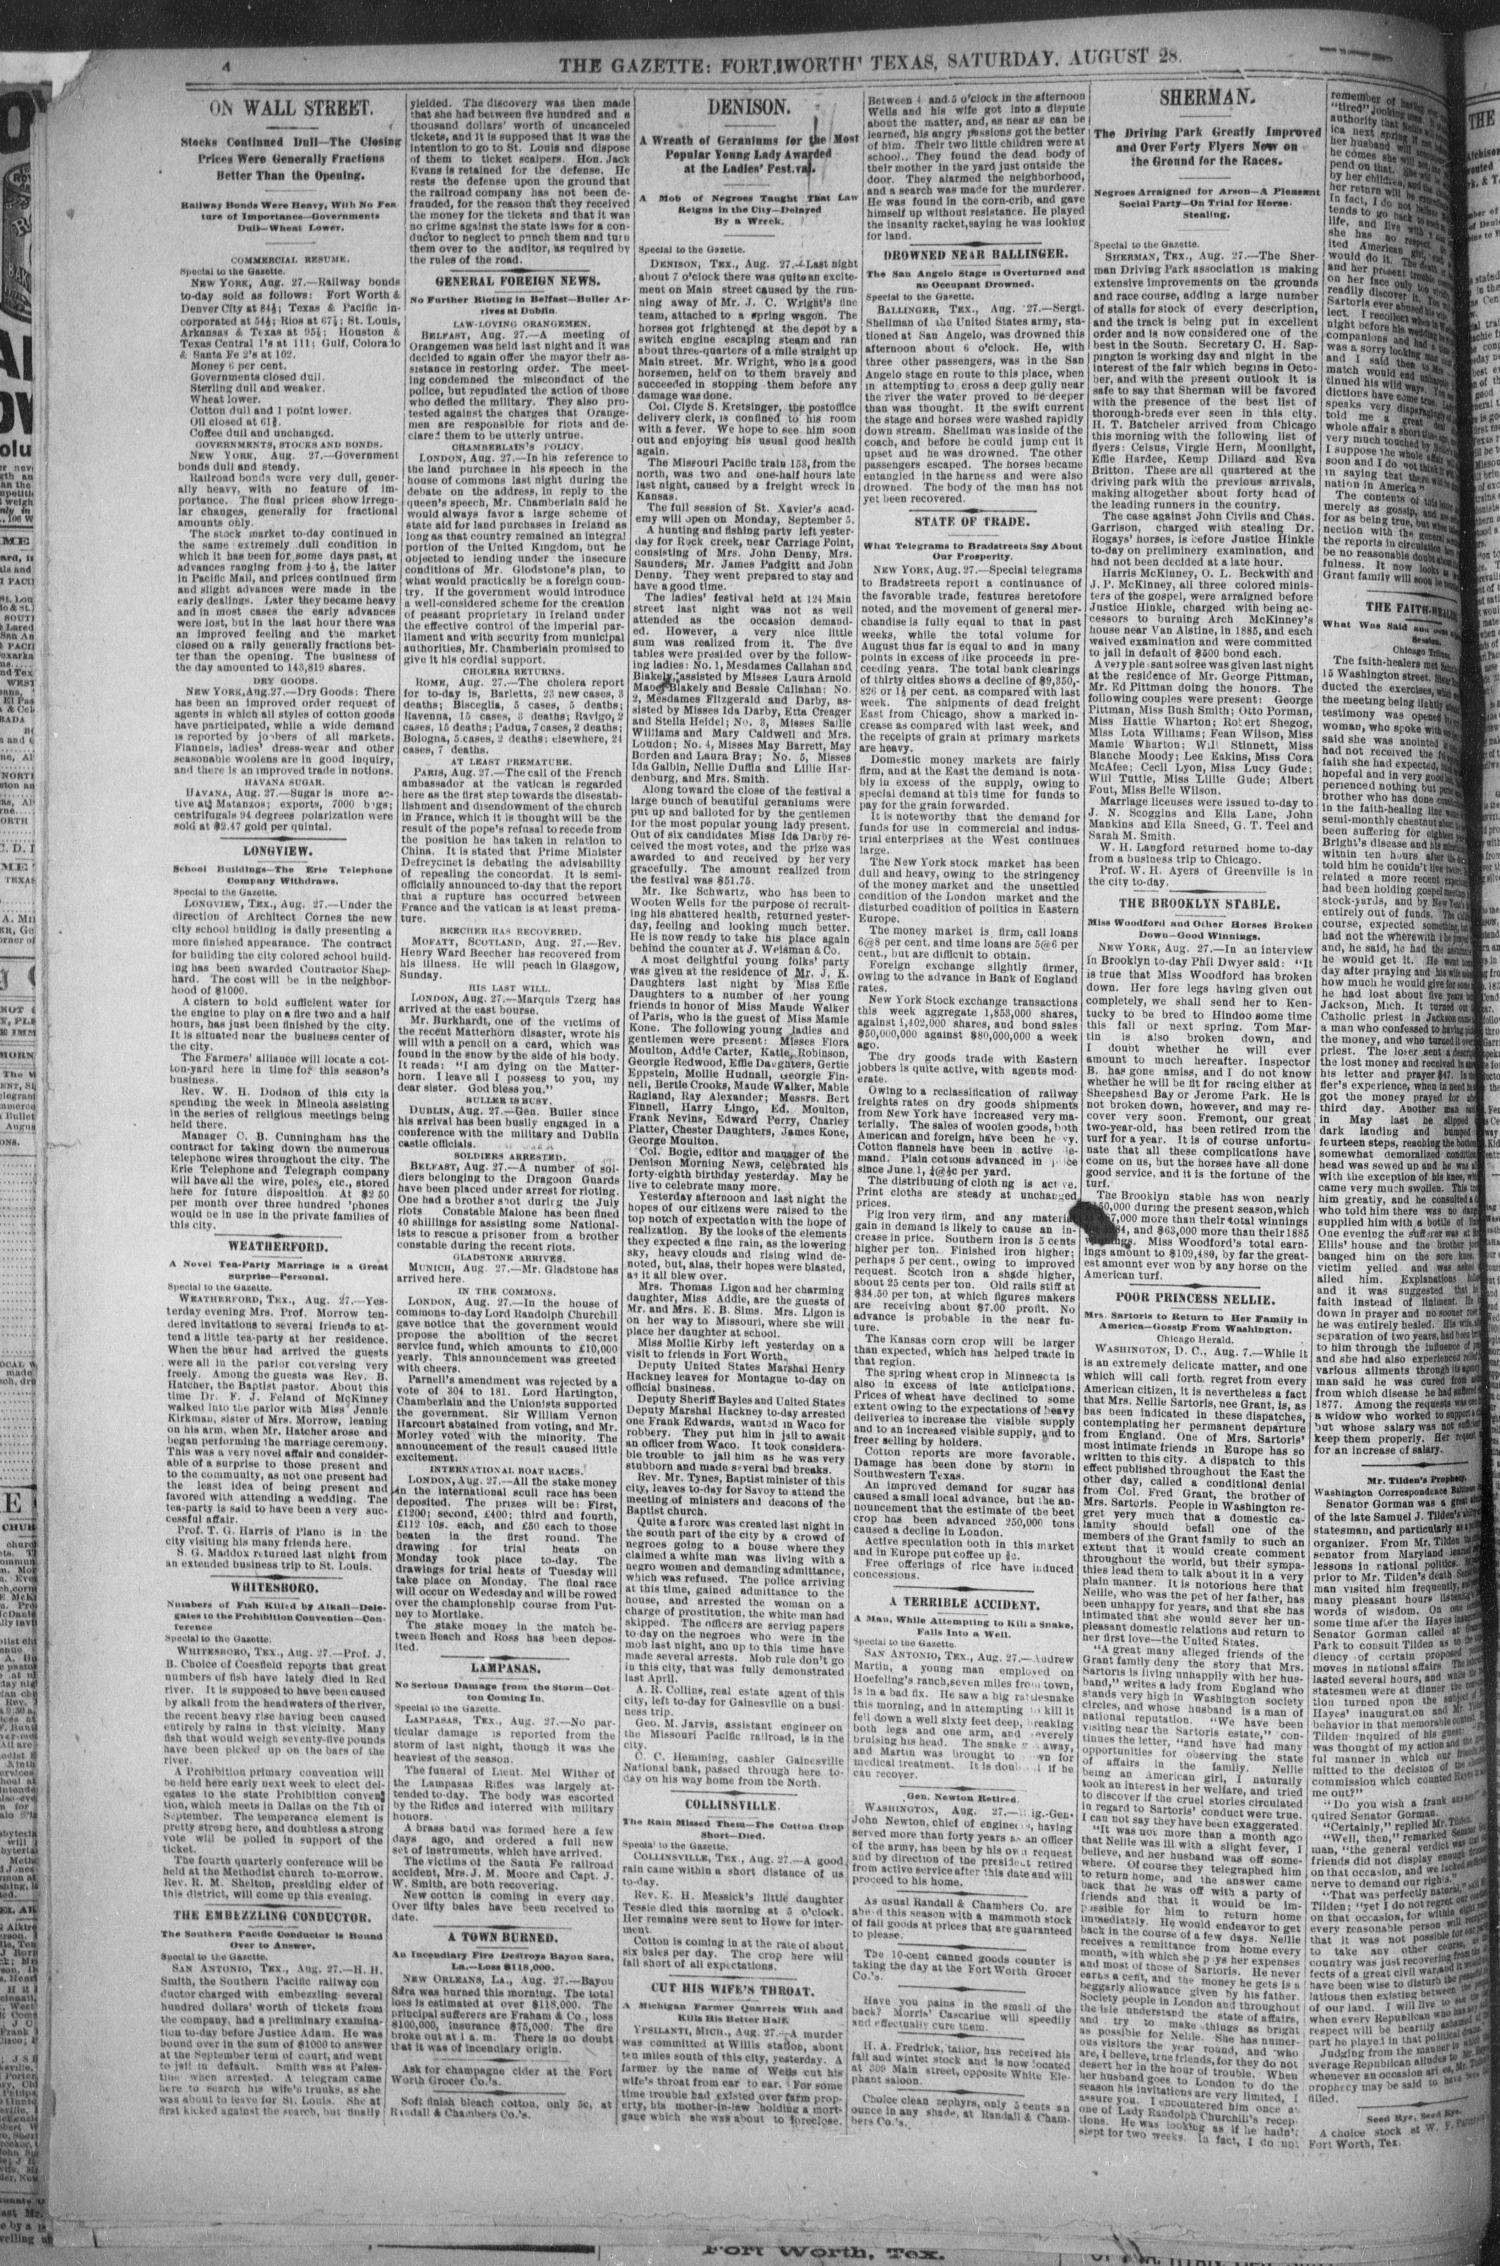 Fort Worth Daily Gazette. (Fort Worth, Tex.), Vol. 12, No. 29, Ed. 1, Saturday, August 28, 1886                                                                                                      [Sequence #]: 4 of 8